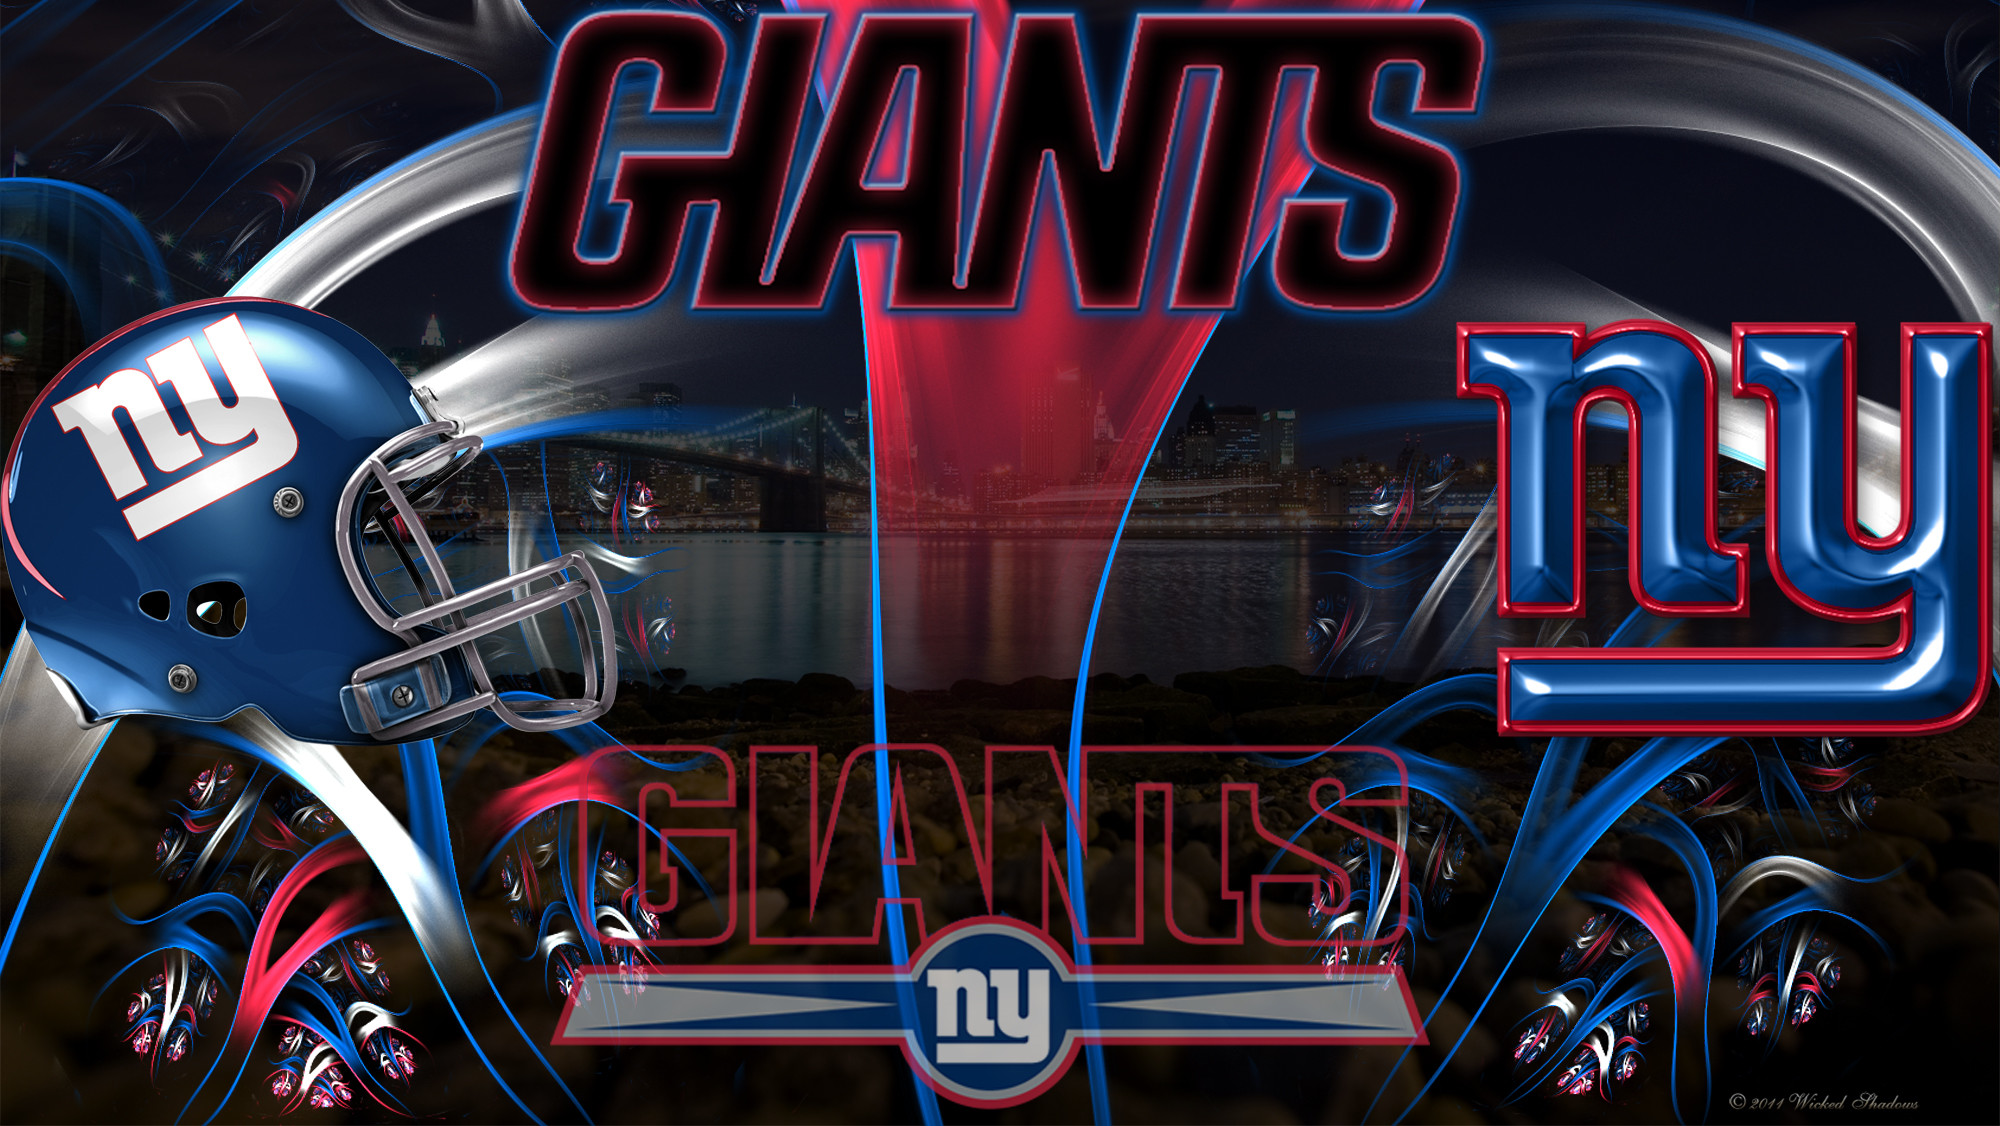 2000x1126 New York Giants Wallpaper 54123